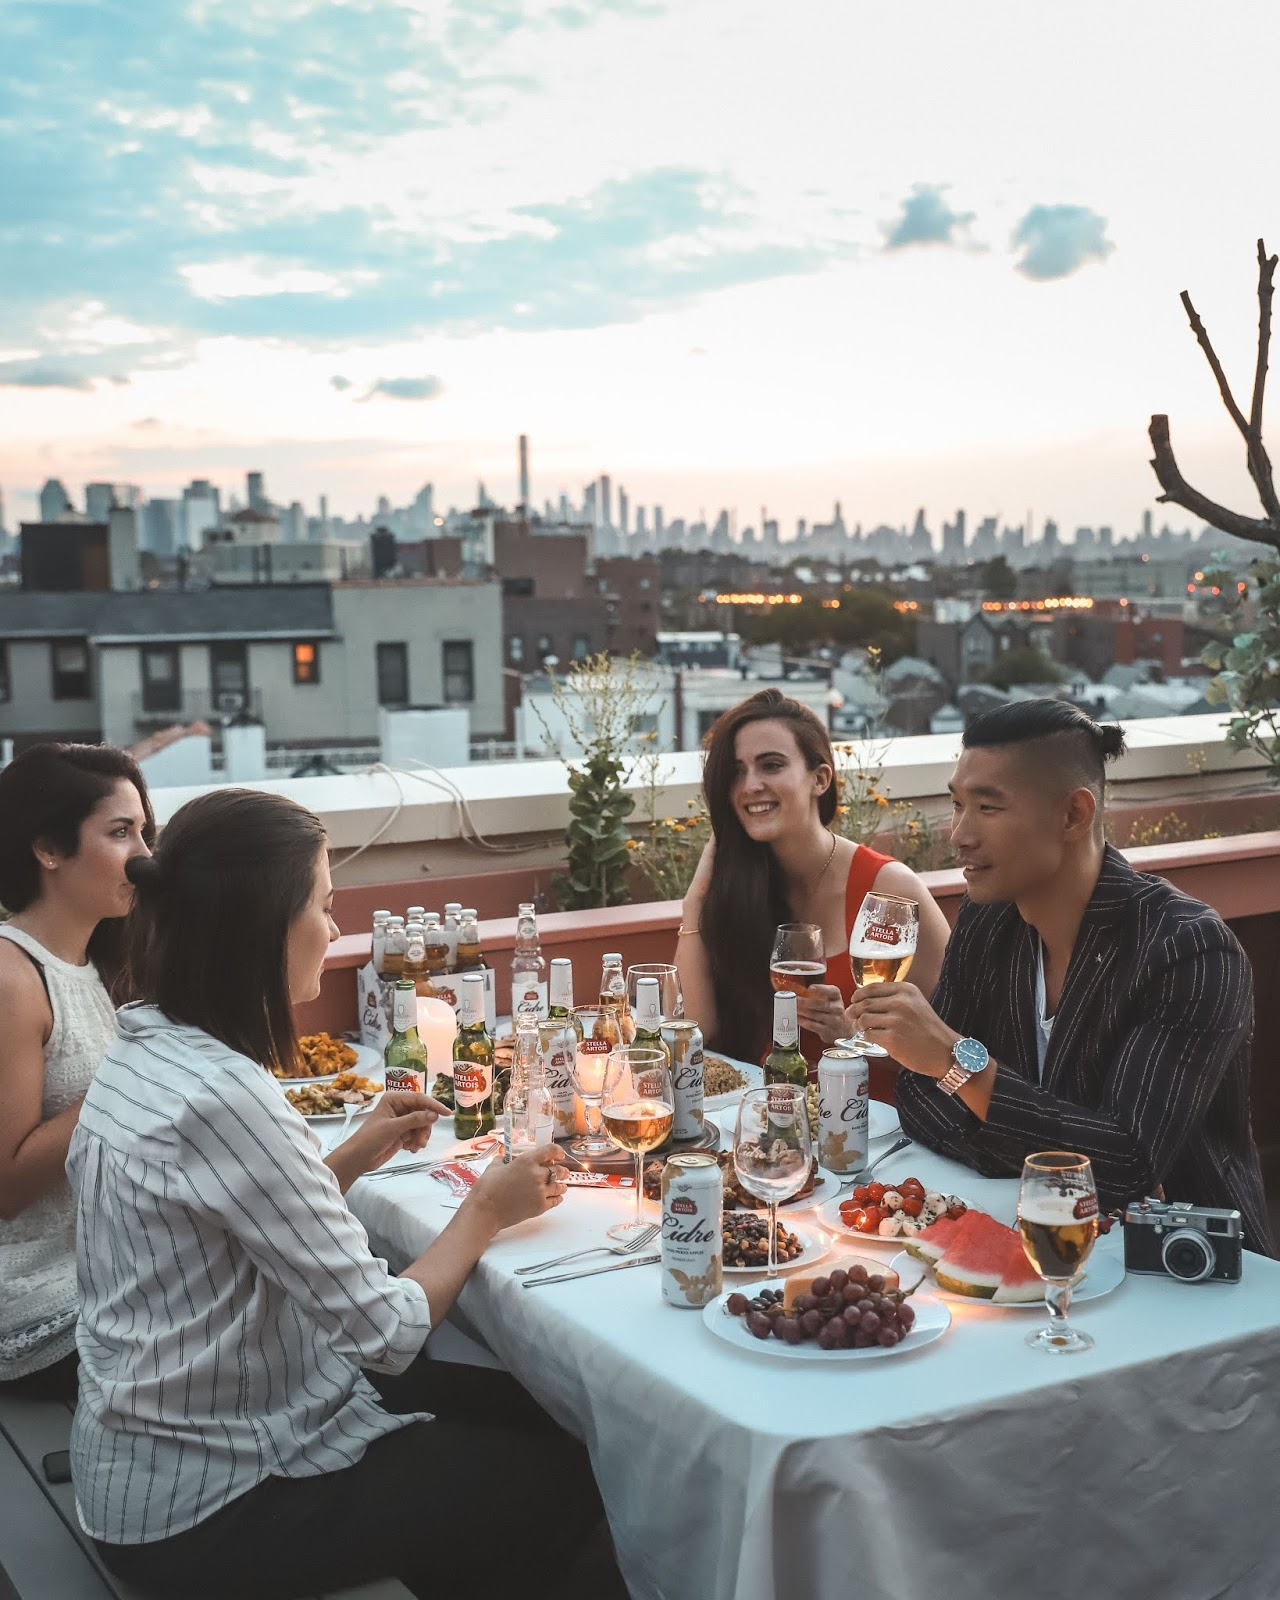 Stella Artois Cheers with Friends on NYC Rooftop, AMWF Couple